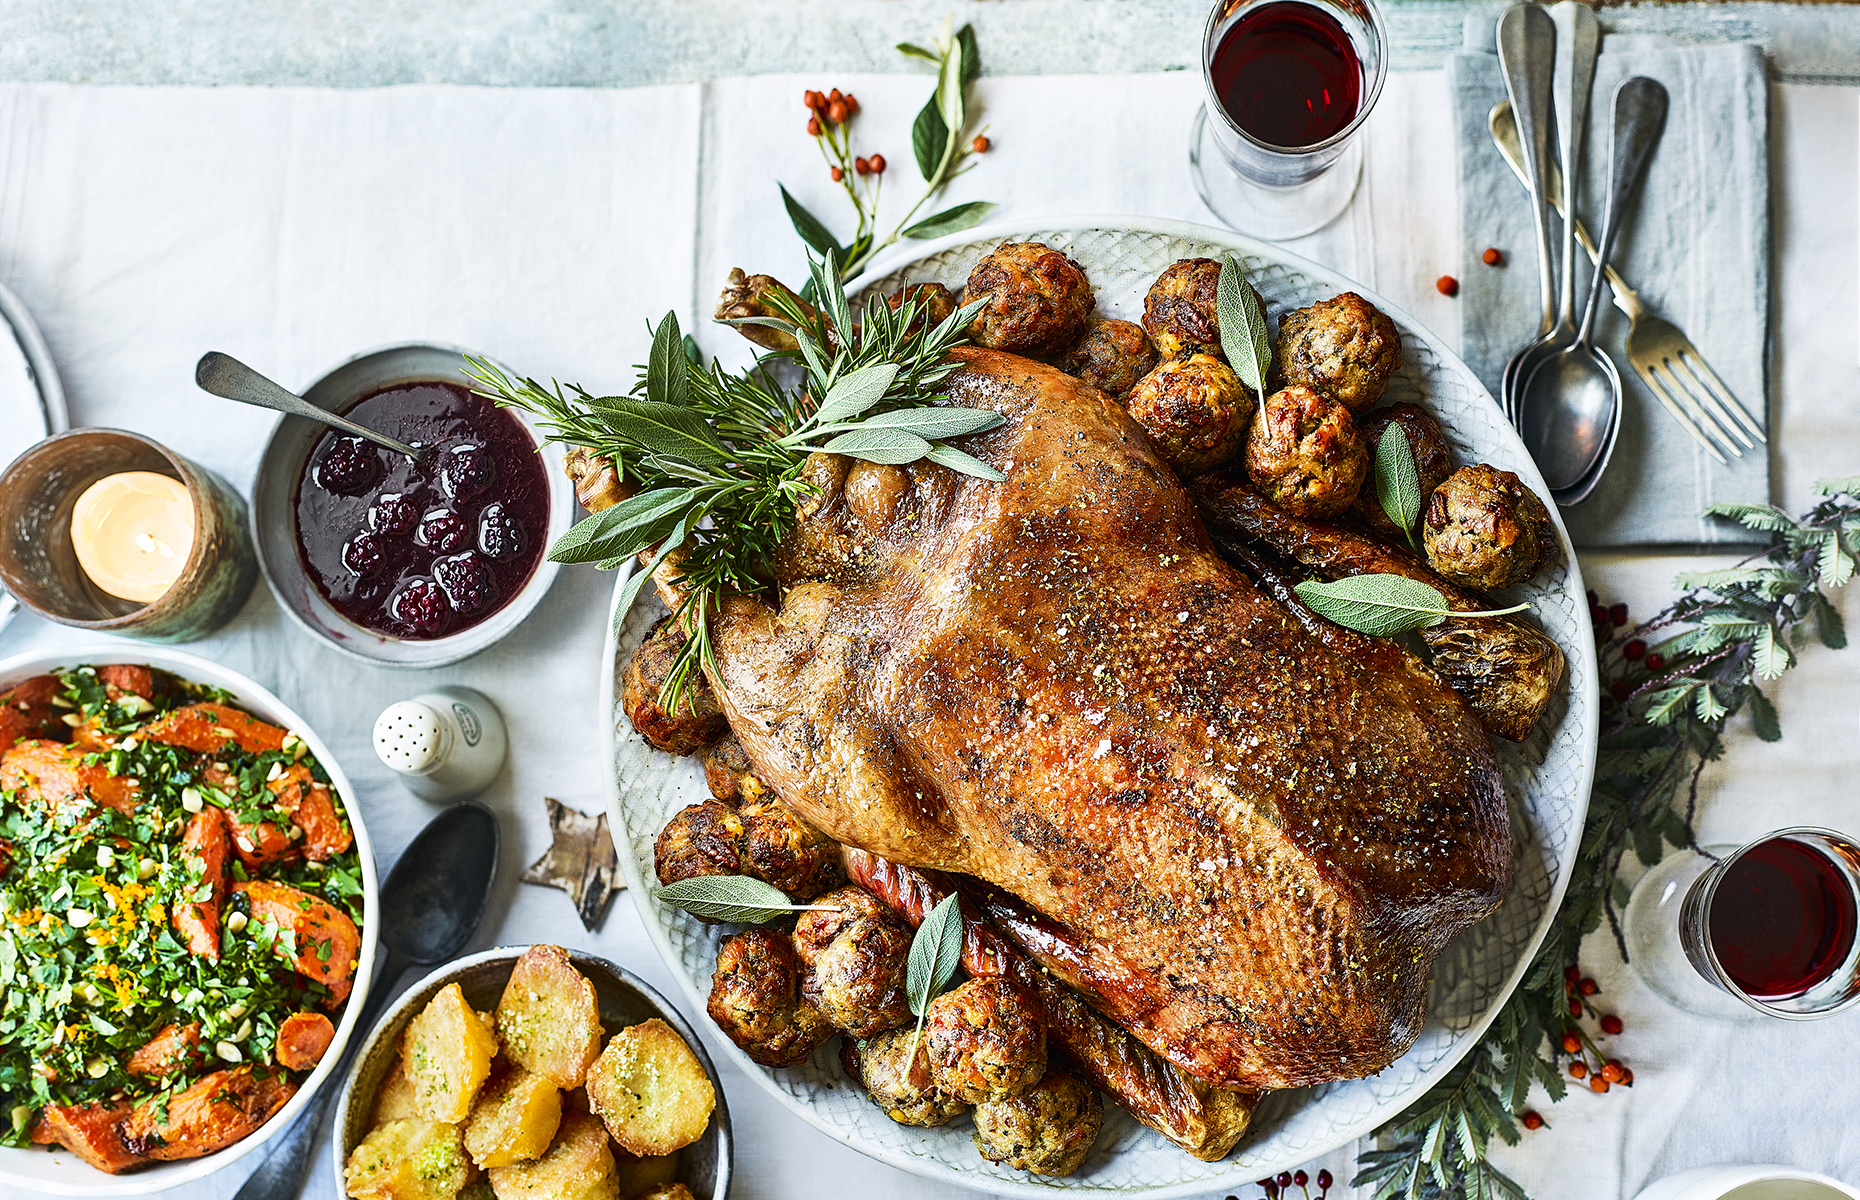 Roast goose with pecan stuffing